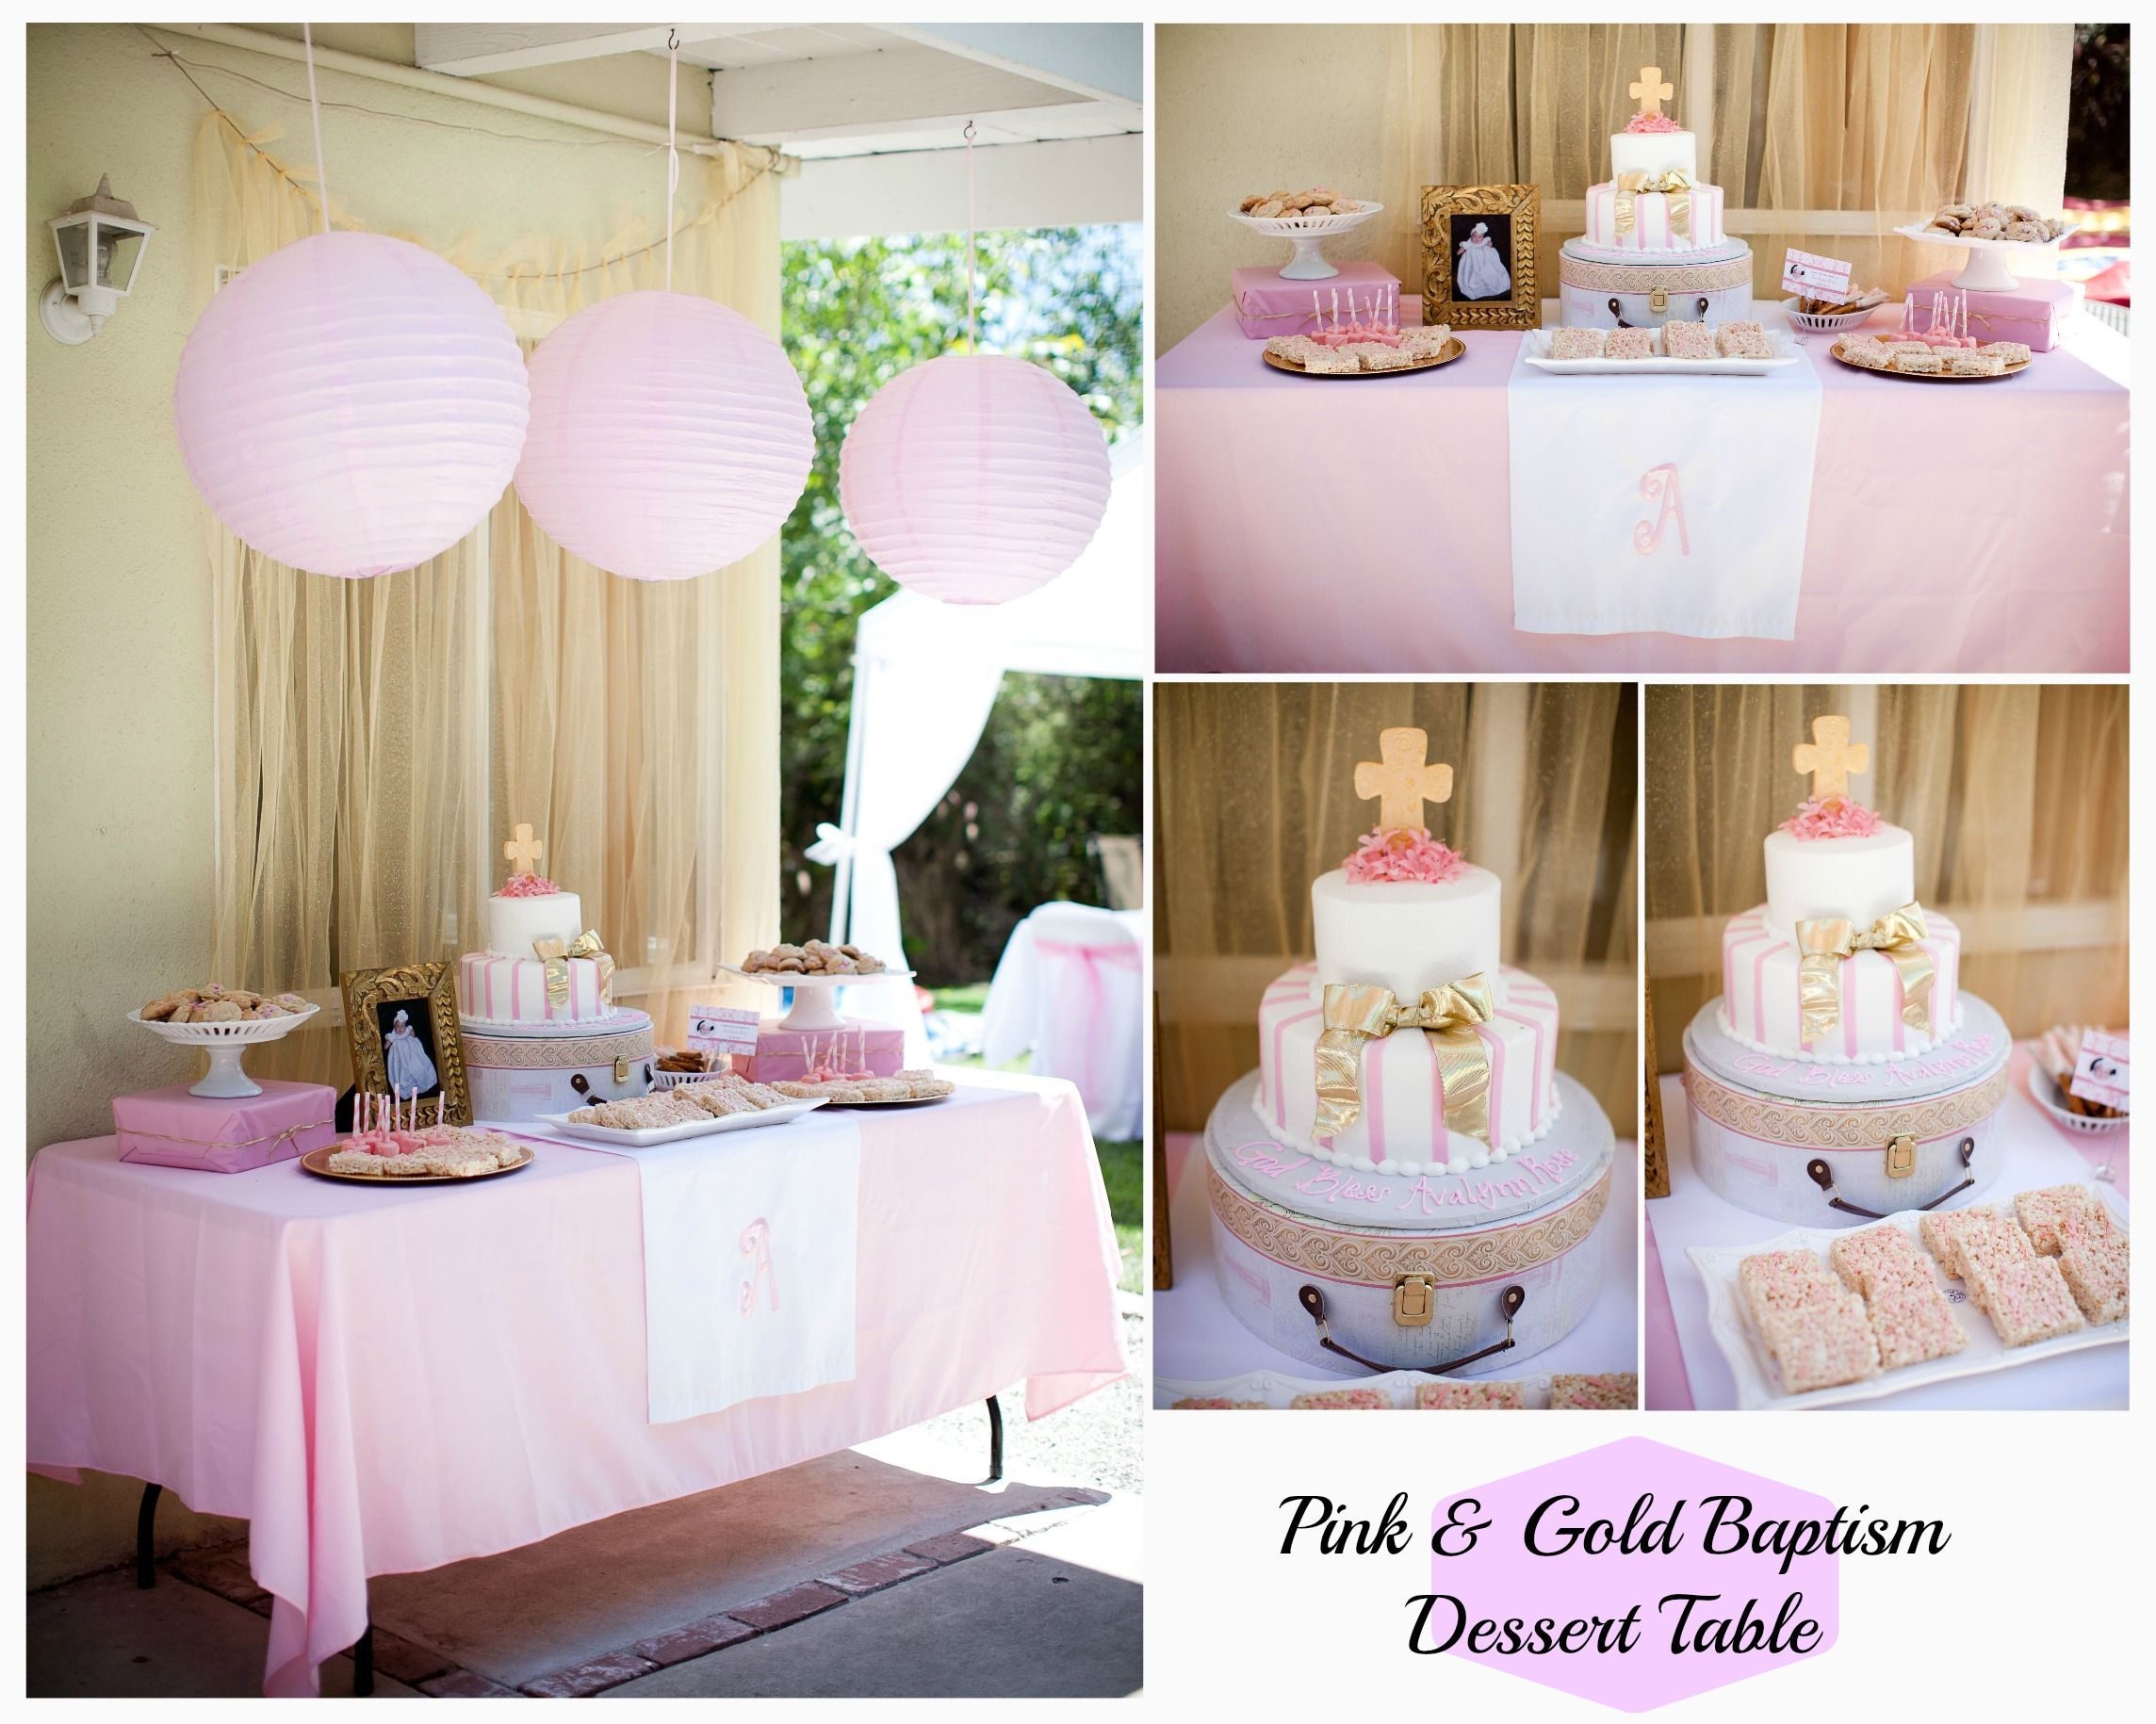 Rustic white amp gold for christian s baptism cake cakes dessert - How To Creat A Simple But Classy Pink Gold Baptism Dessert Table For Any Darling